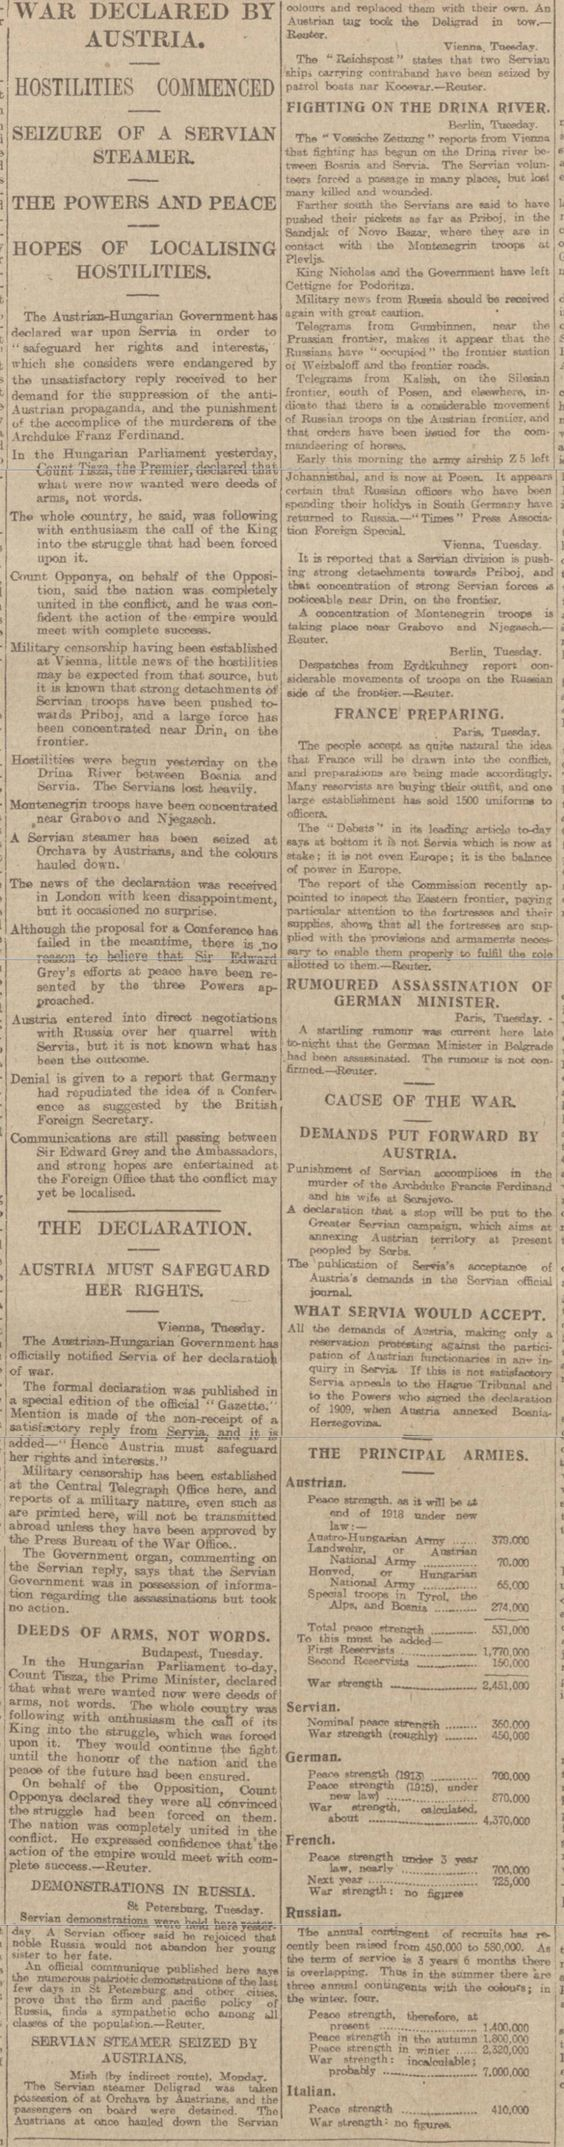 the history of world war i between austria hungary and serbia on july 28 1914 When serbia's response fell short of the demands, austria-hungary declared war on serbia on july 28 more declarations of war austria-hungary had hoped they could quickly take over serbia and that serbia's ally, russia, would not risk a major war in order to help serbia.